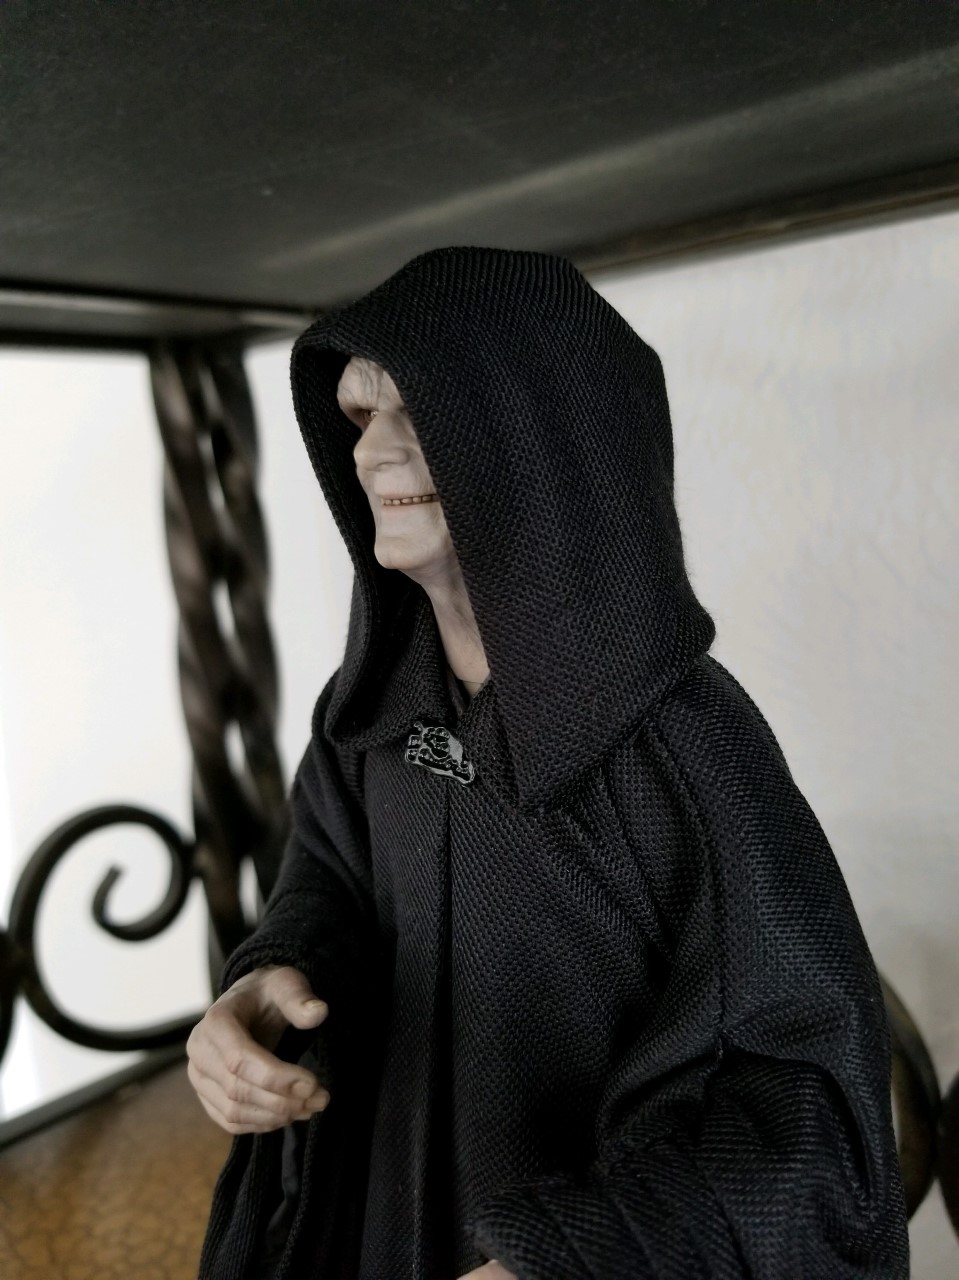 rotj - Hot Toys Star Wars Emperor Palpatine (Deluxe) Review - Page 2 Thumbn13